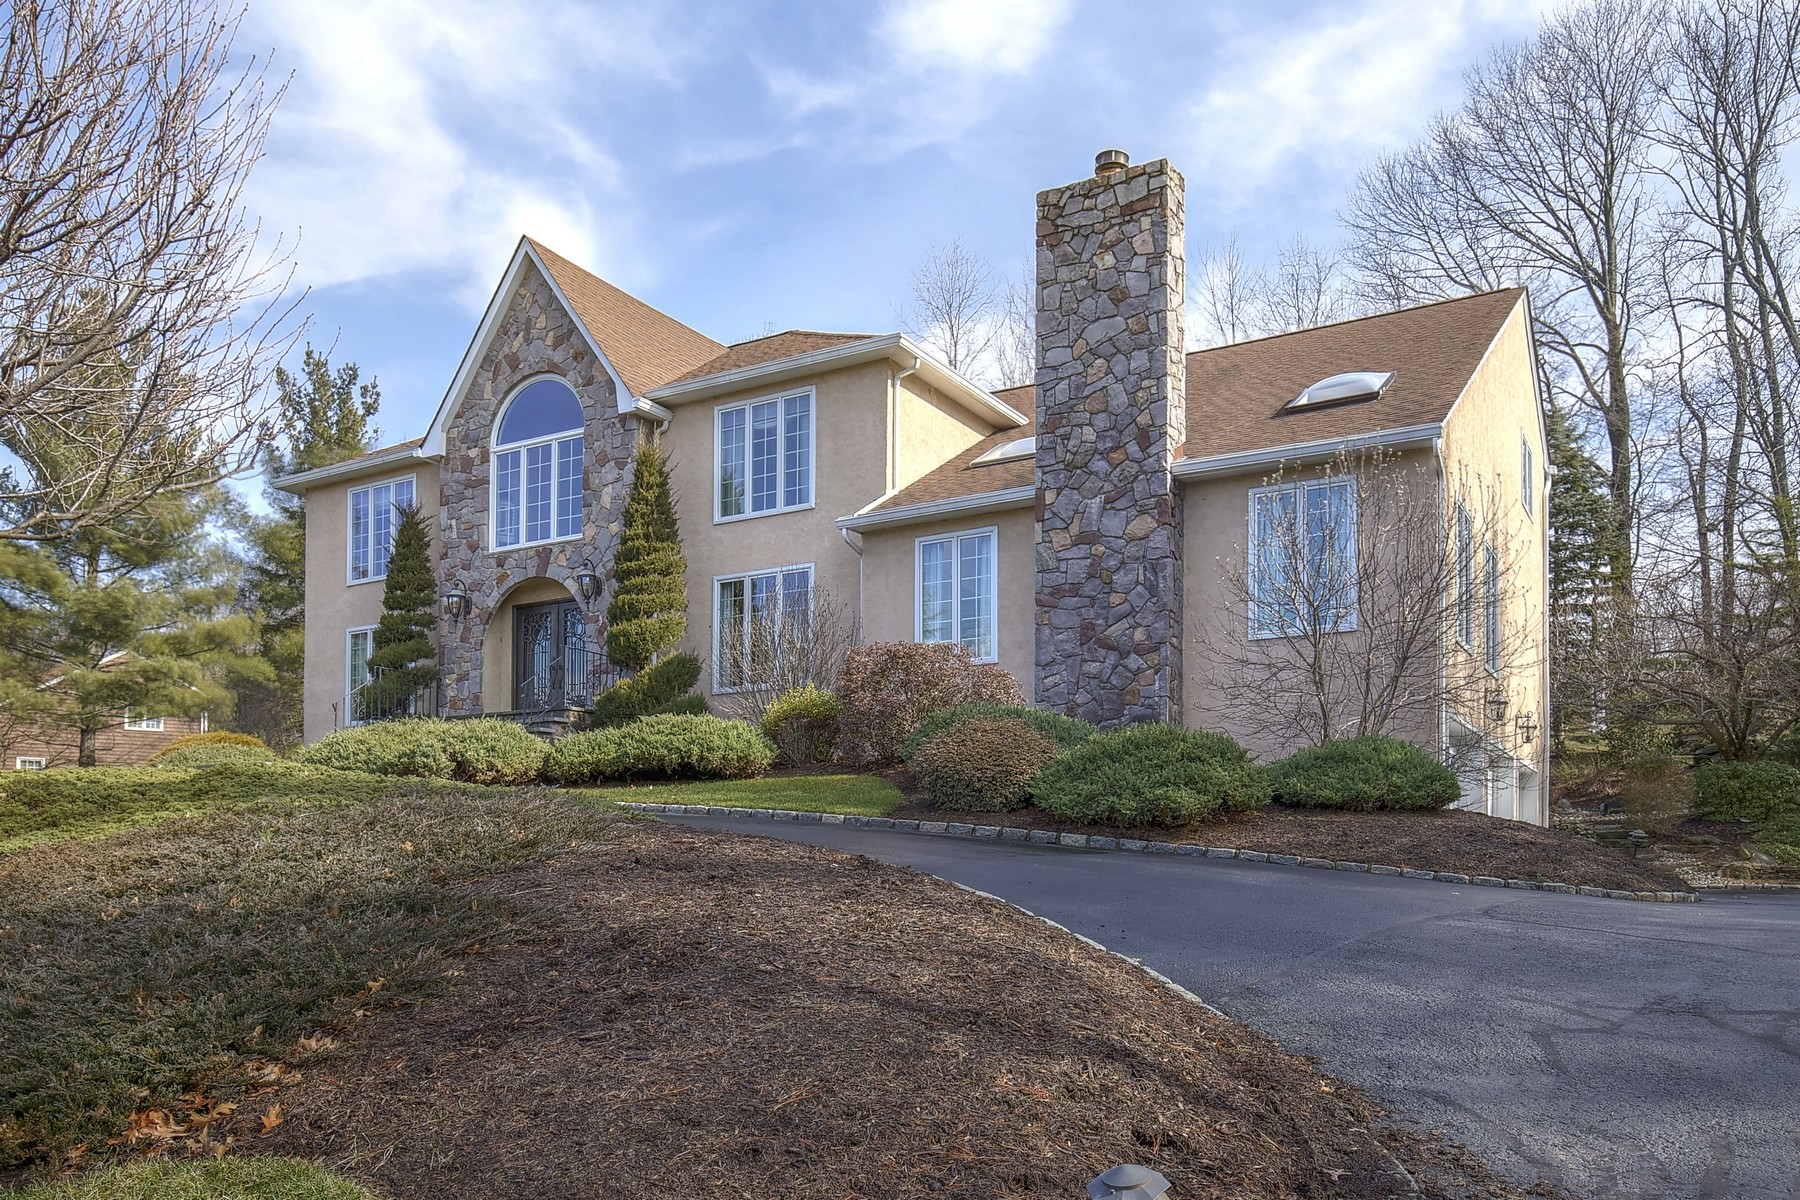 Single Family Home for Sale at Grand Colonial 12 Manchester Court Morris Township, New Jersey 07960 United States